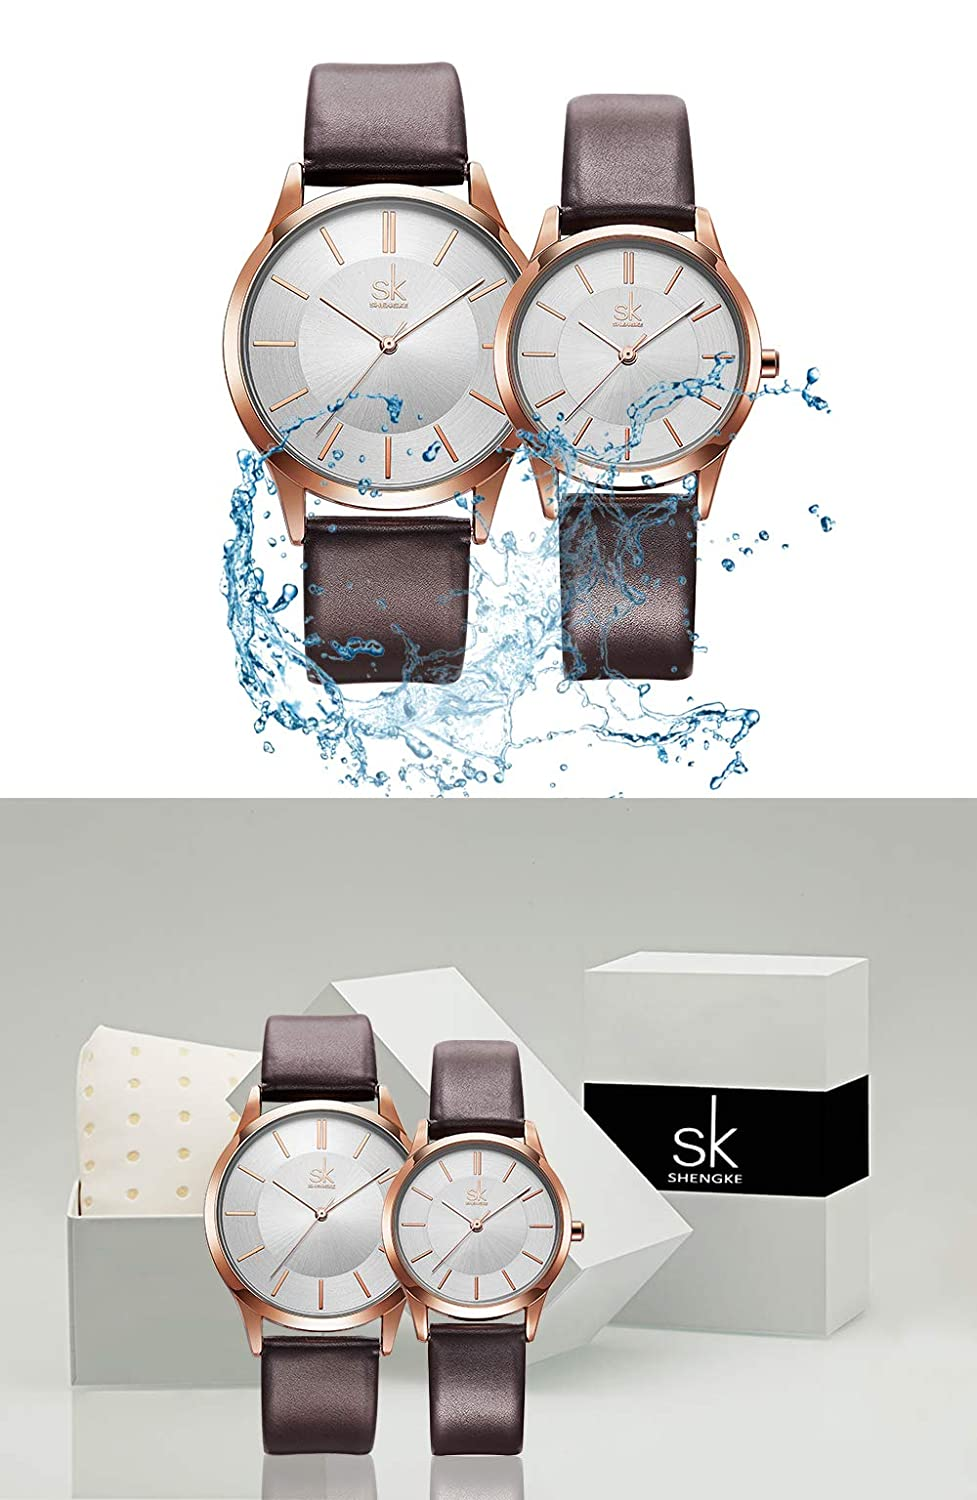 bbadce1c3dda Amazon.com  SK SHENGKE Couple Watches Anniversary Gifts for Lover Set of 2  Pairs Sweet Gifts for Valentines. (K8037-Brown)  Watches